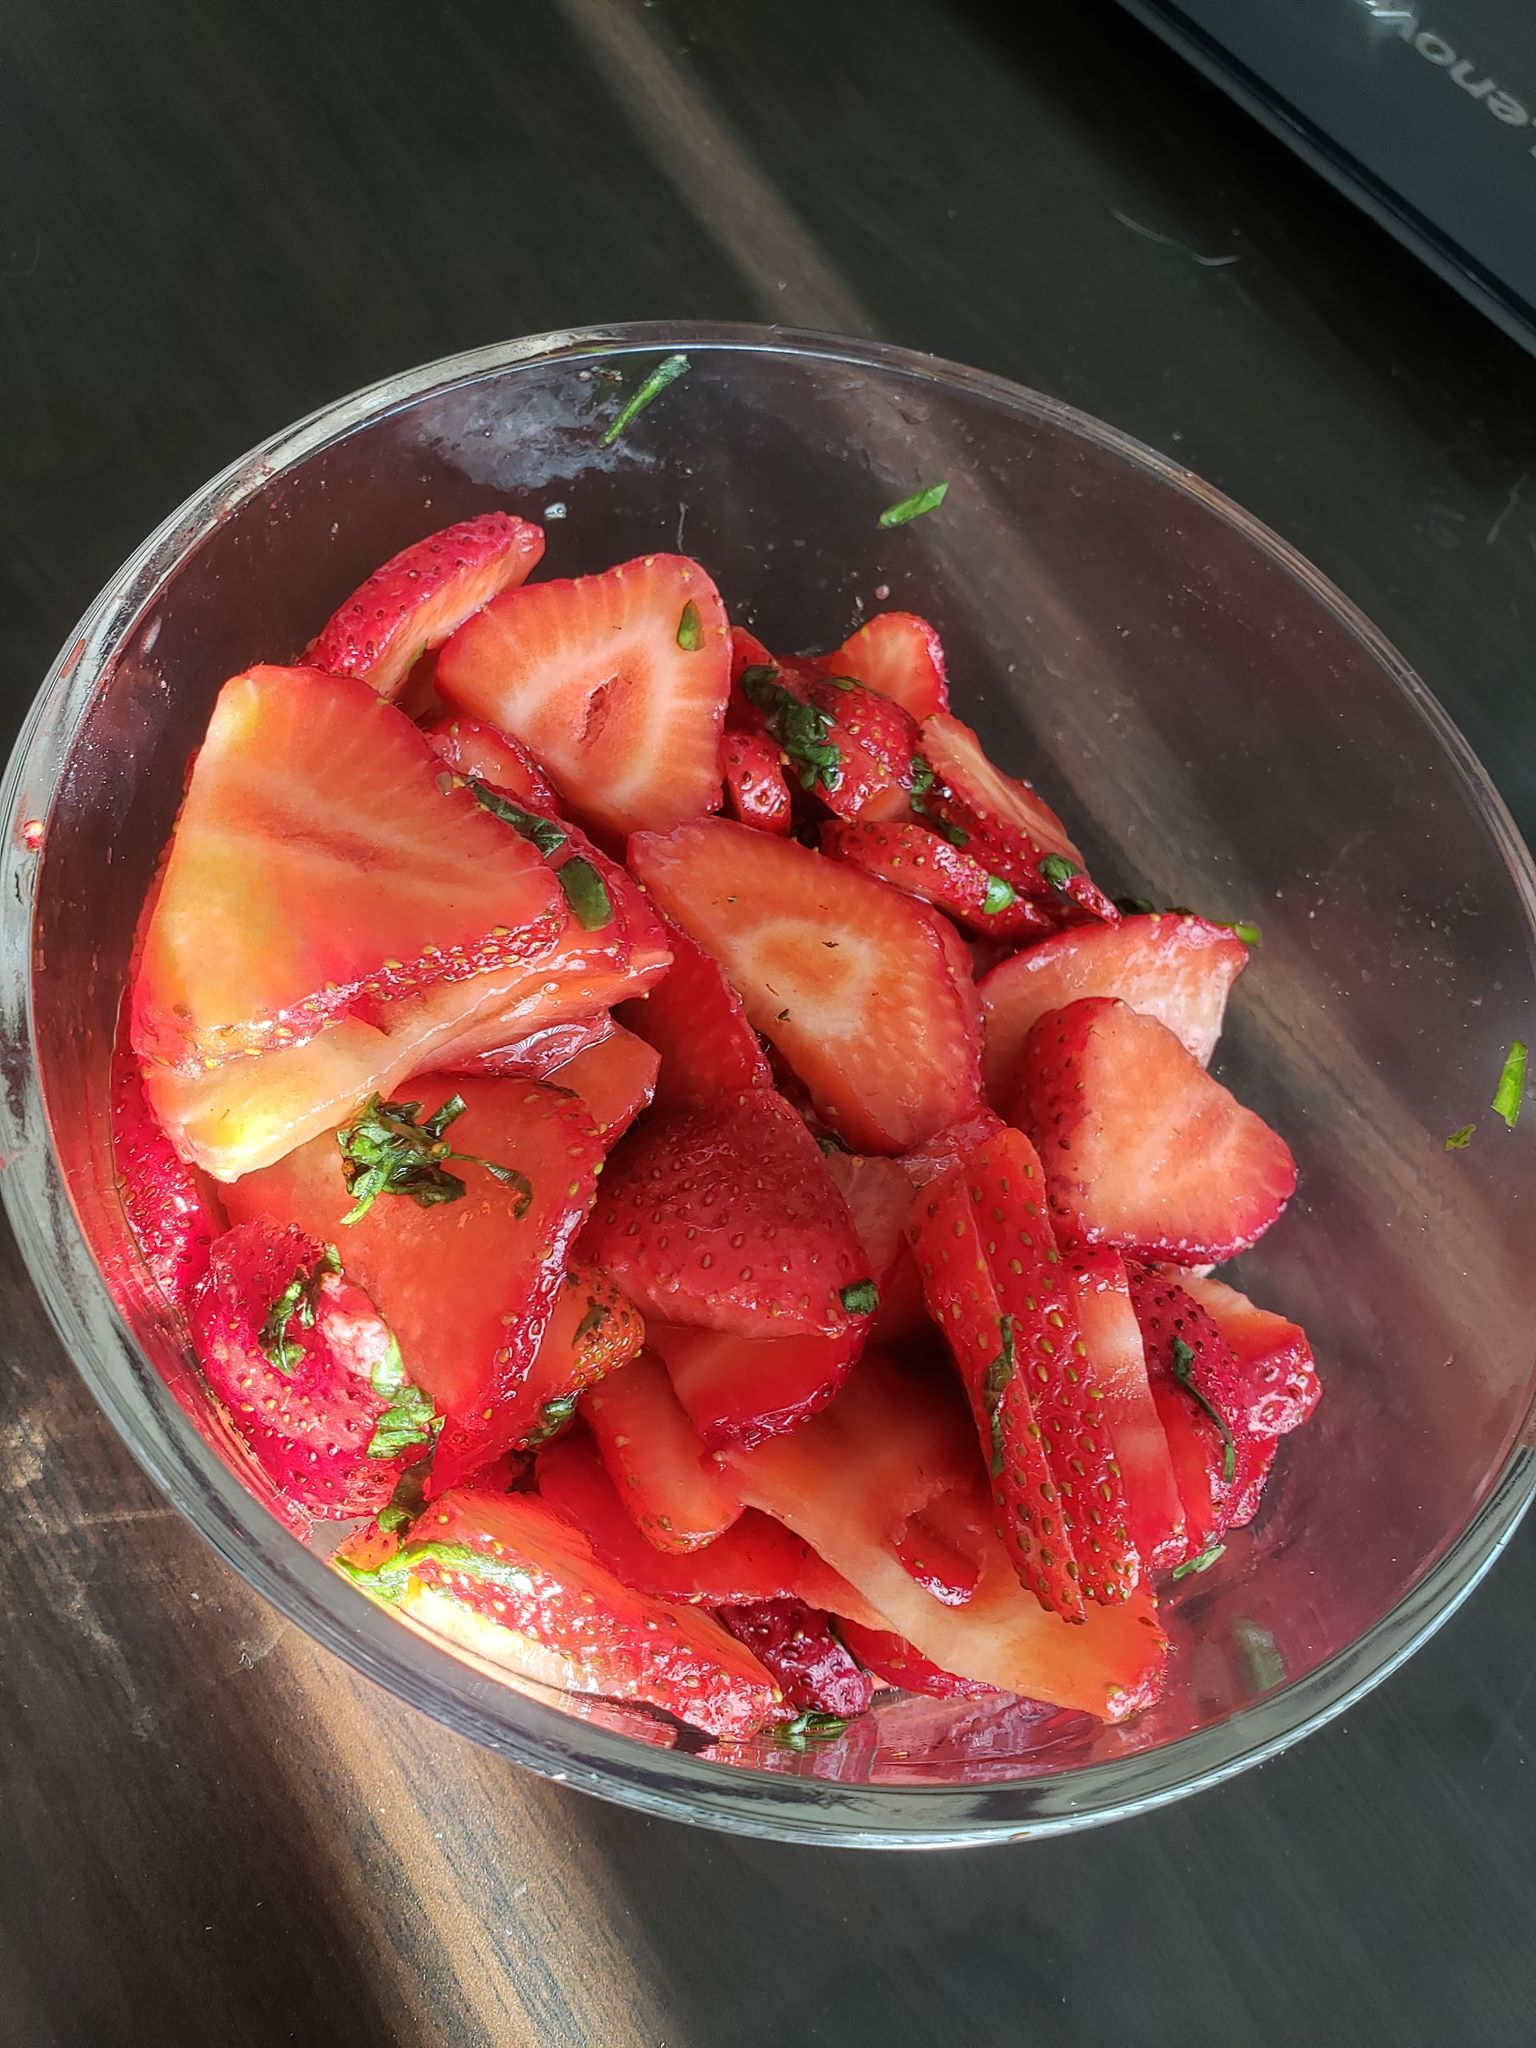 Lemon-Basil Strawberry Salad